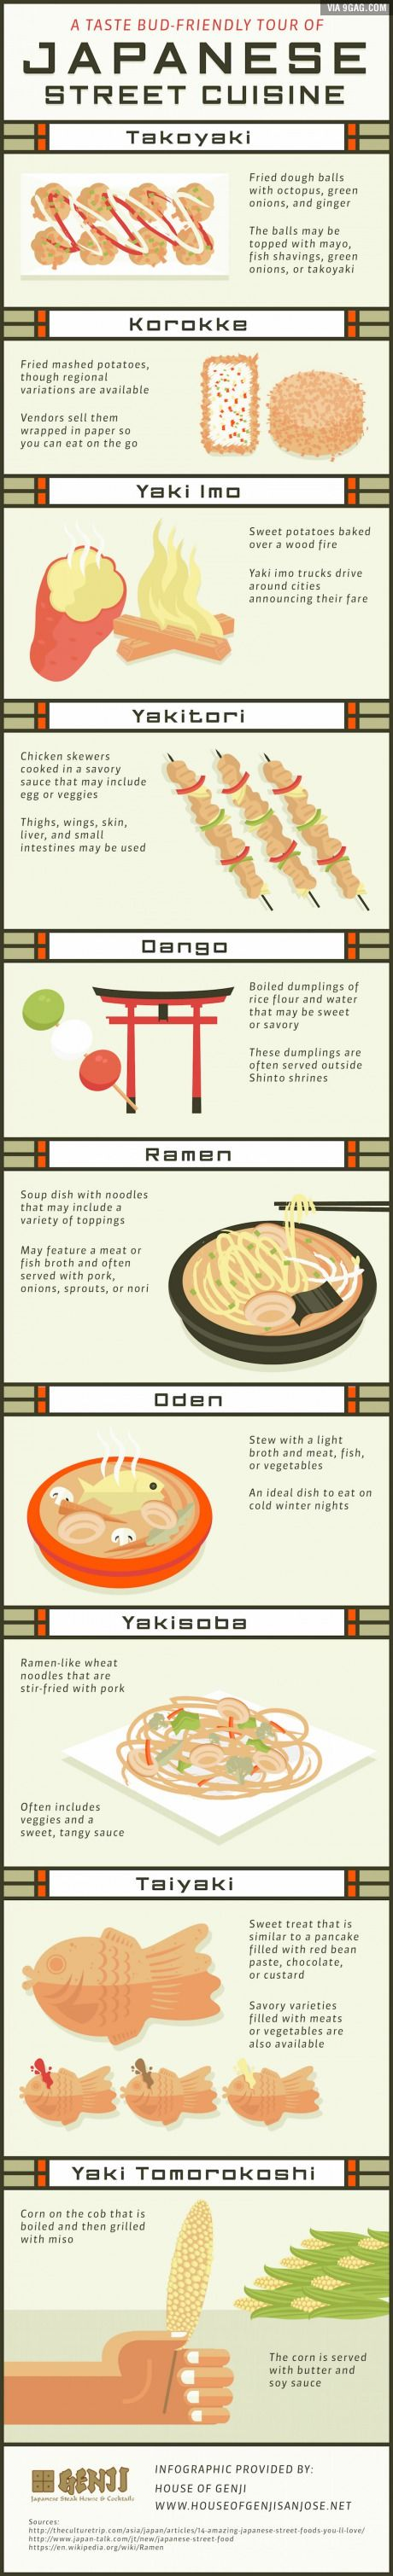 10 Delicious Japanese Street Foods That You Should Try